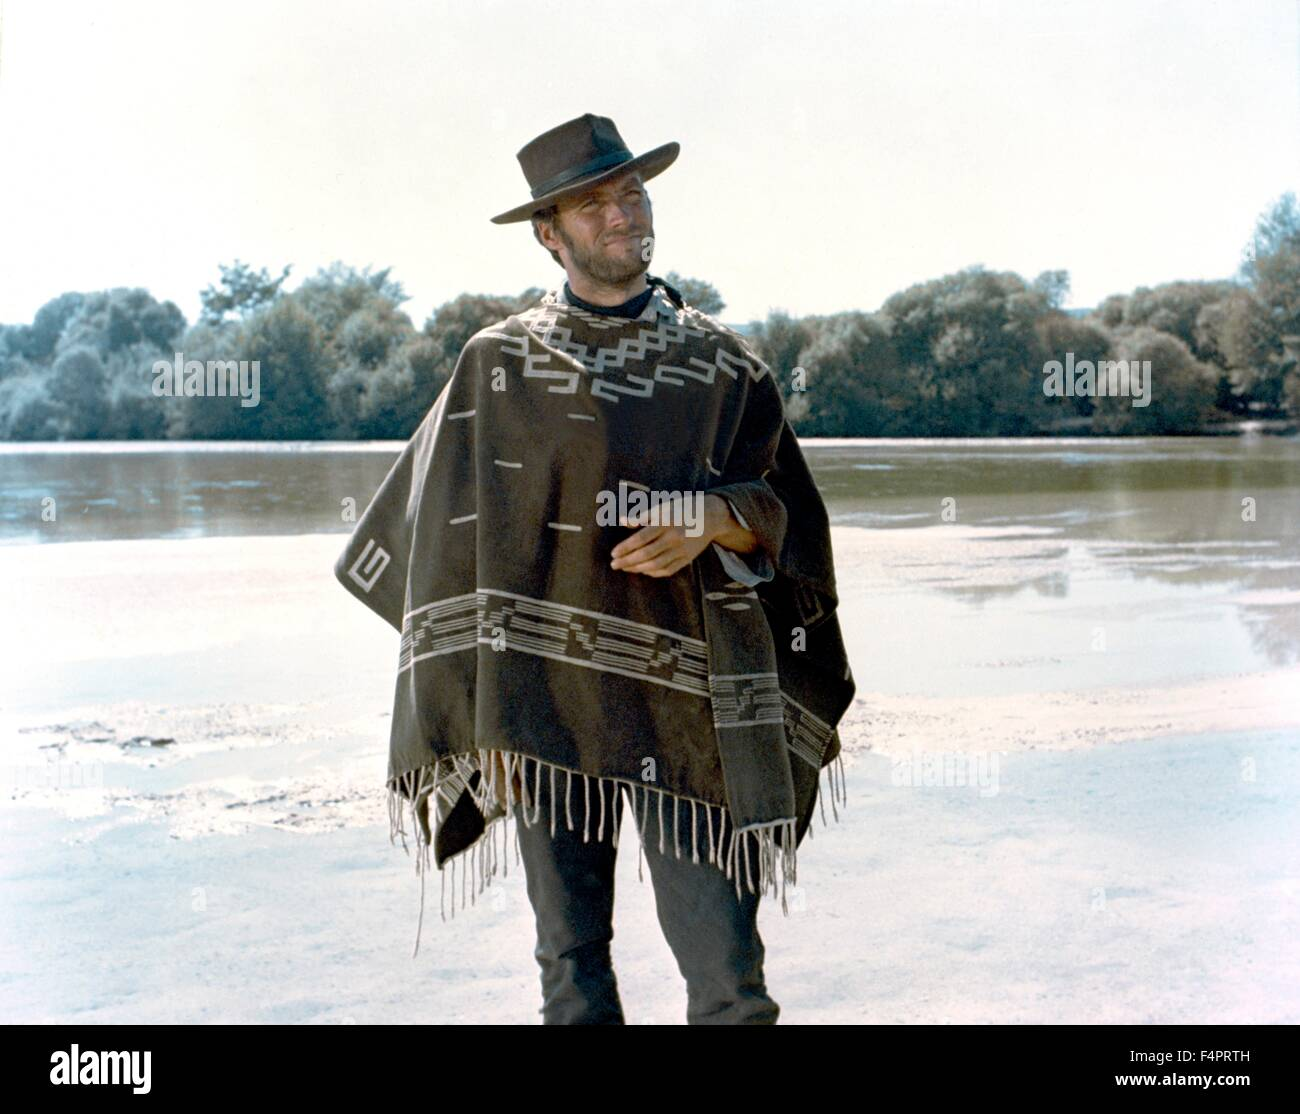 Clint Eastwood Poncho Stock Photos & Clint Eastwood Poncho